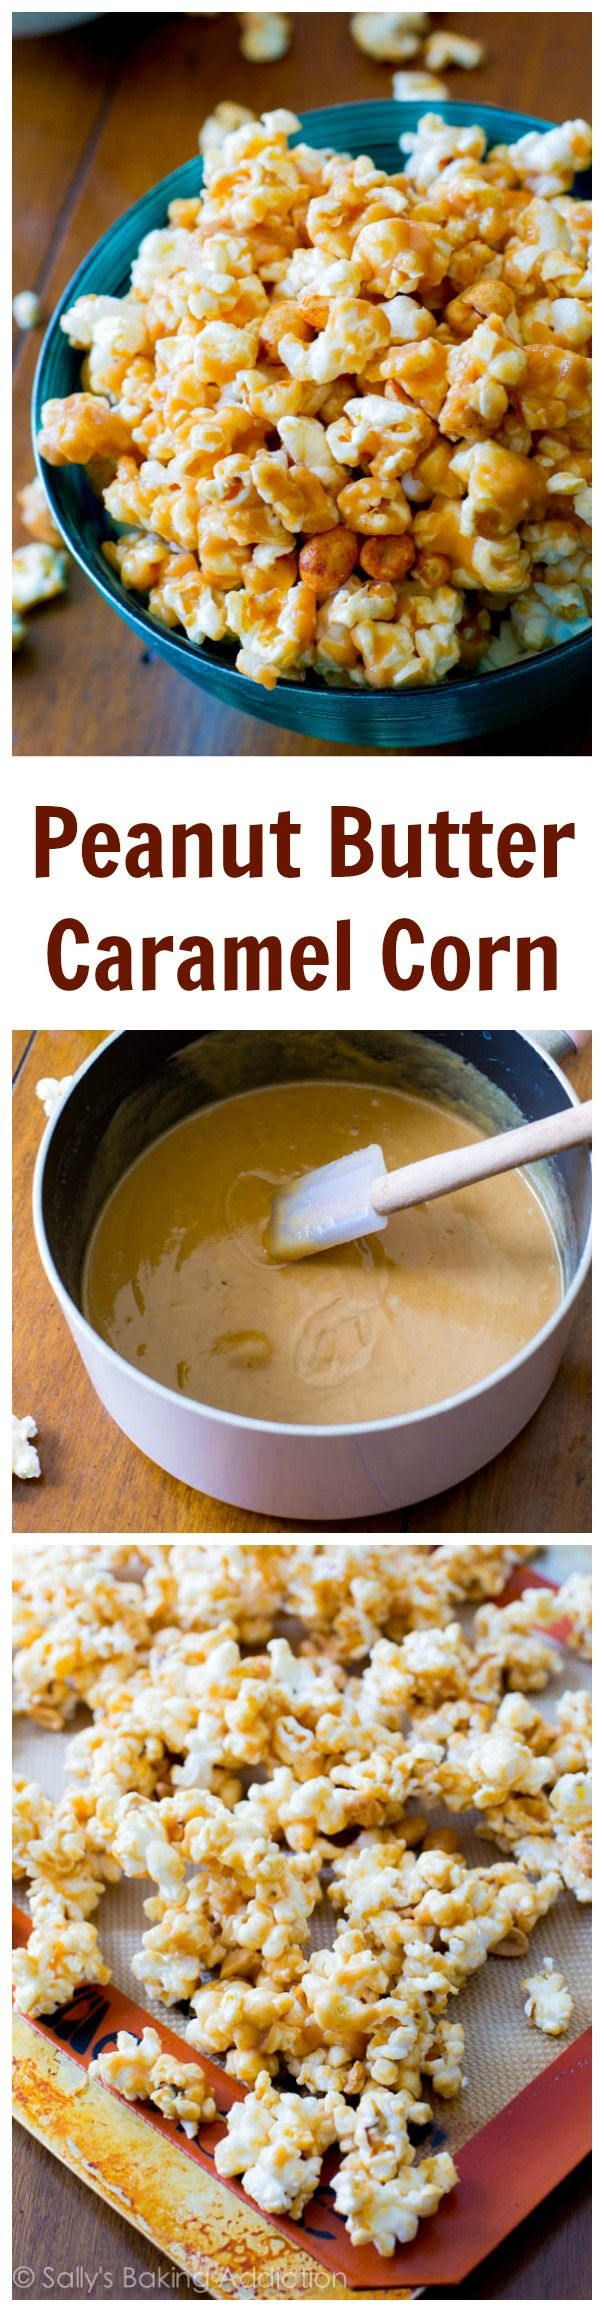 20 minute Peanut Butter Caramel Corn. You won't be able to put this stuff down!! @Sally McWilliam McWilliam McWilliam McWilliam [Sally's Baking Addiction]